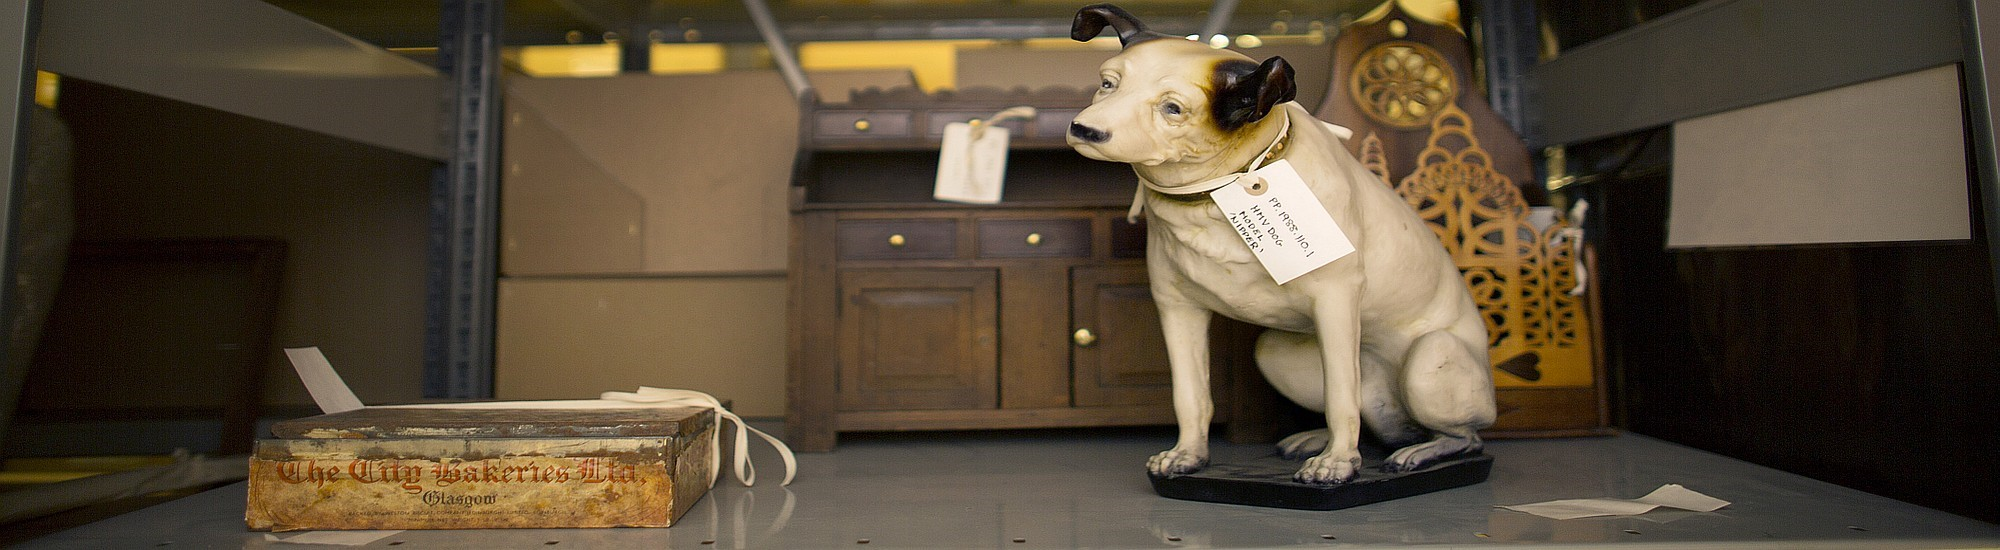 Glasgow Museums Social History Collection - HMV Dog